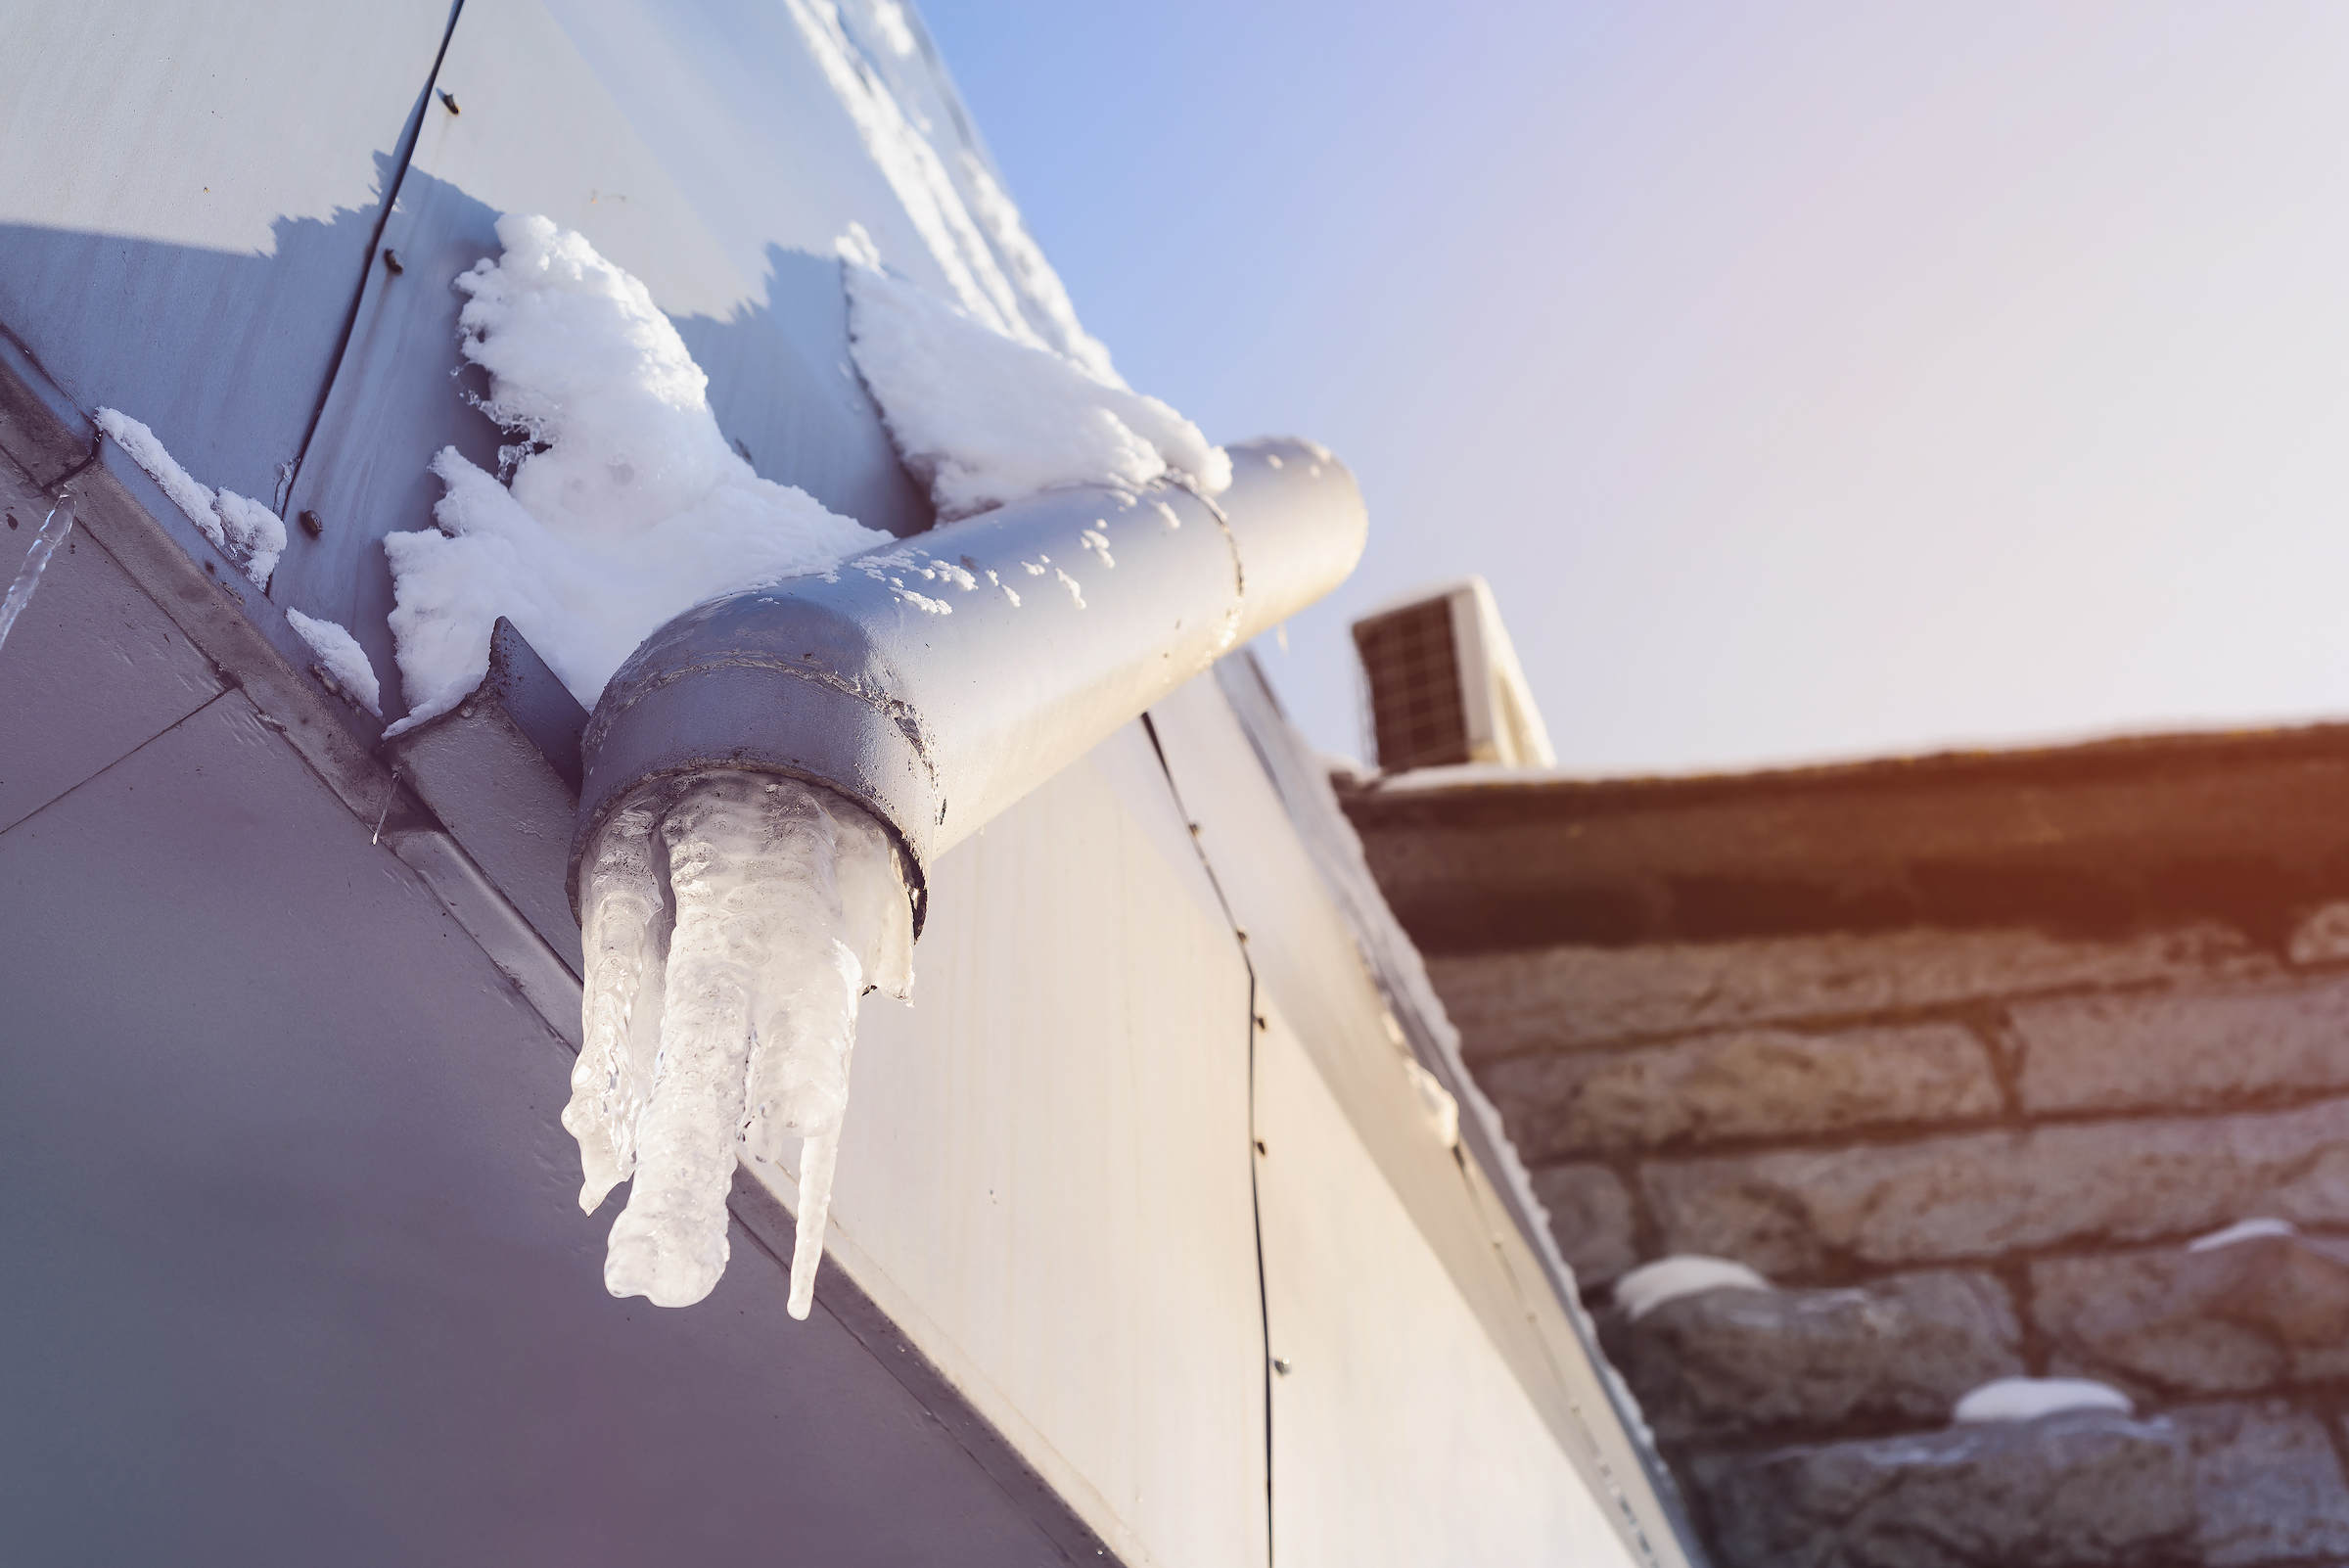 New homeowners: make sure to protect your pipes from freezing